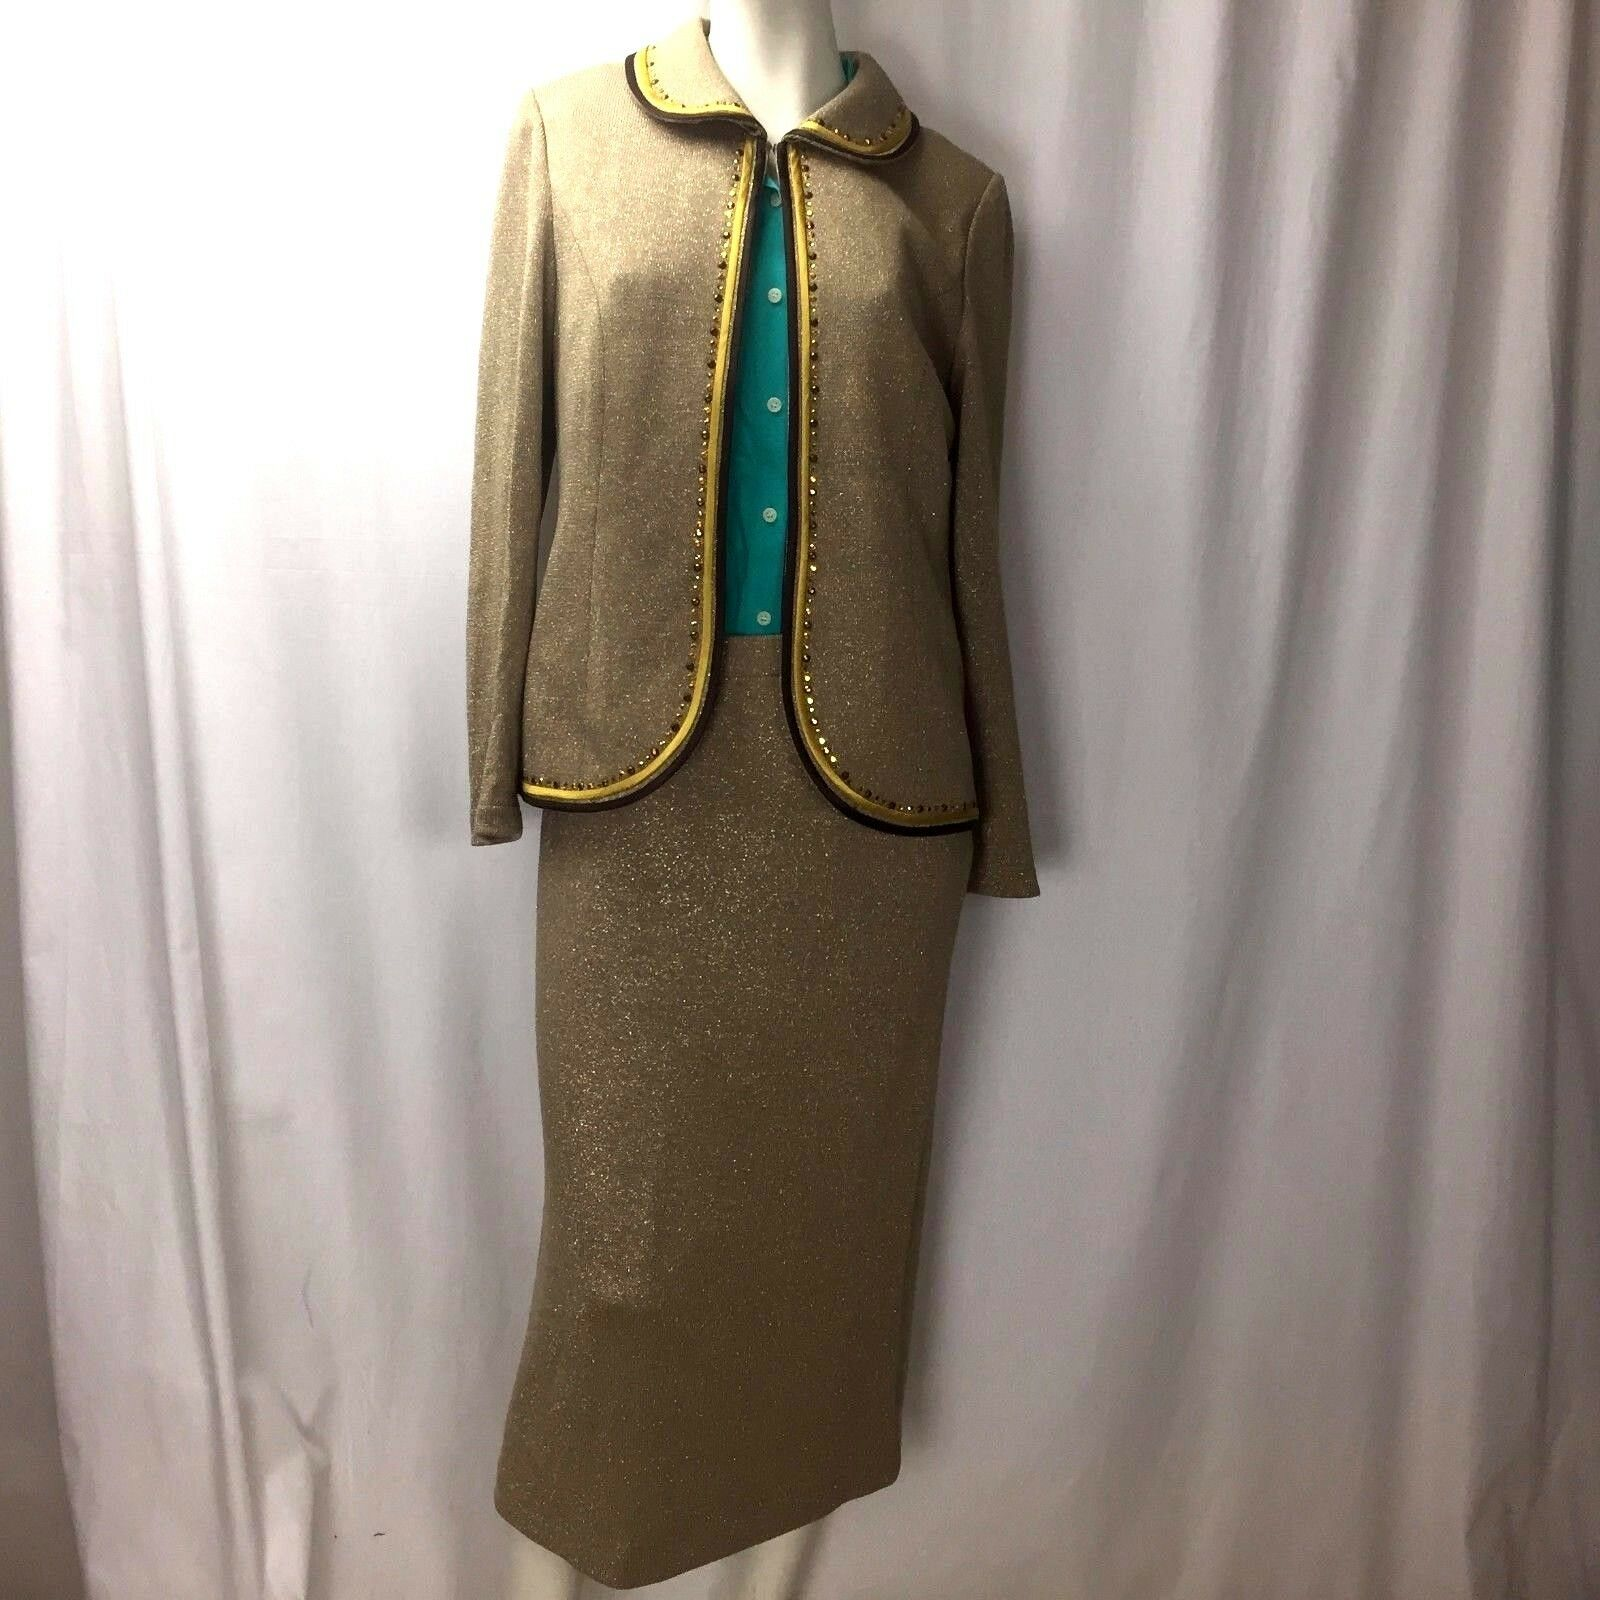 Stunning Elite Champagne gold Metallic Tan Studded Open Blazer Skirt Suit Sz 10